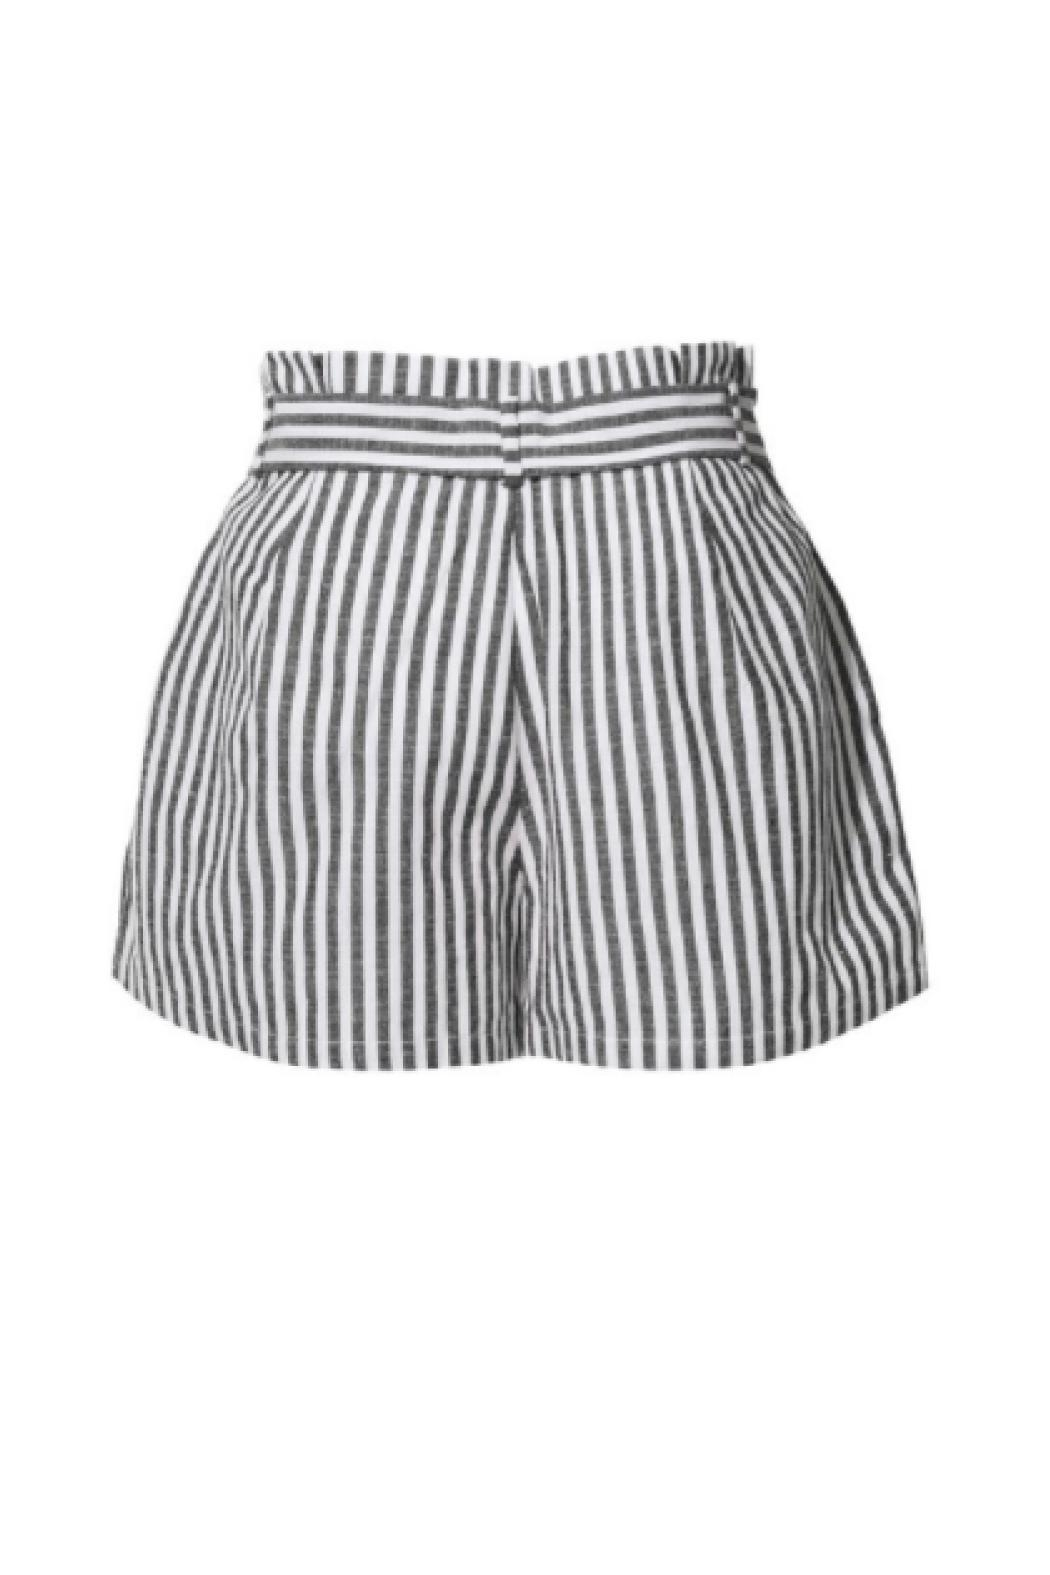 2Sable Striped Shorts - Front Full Image